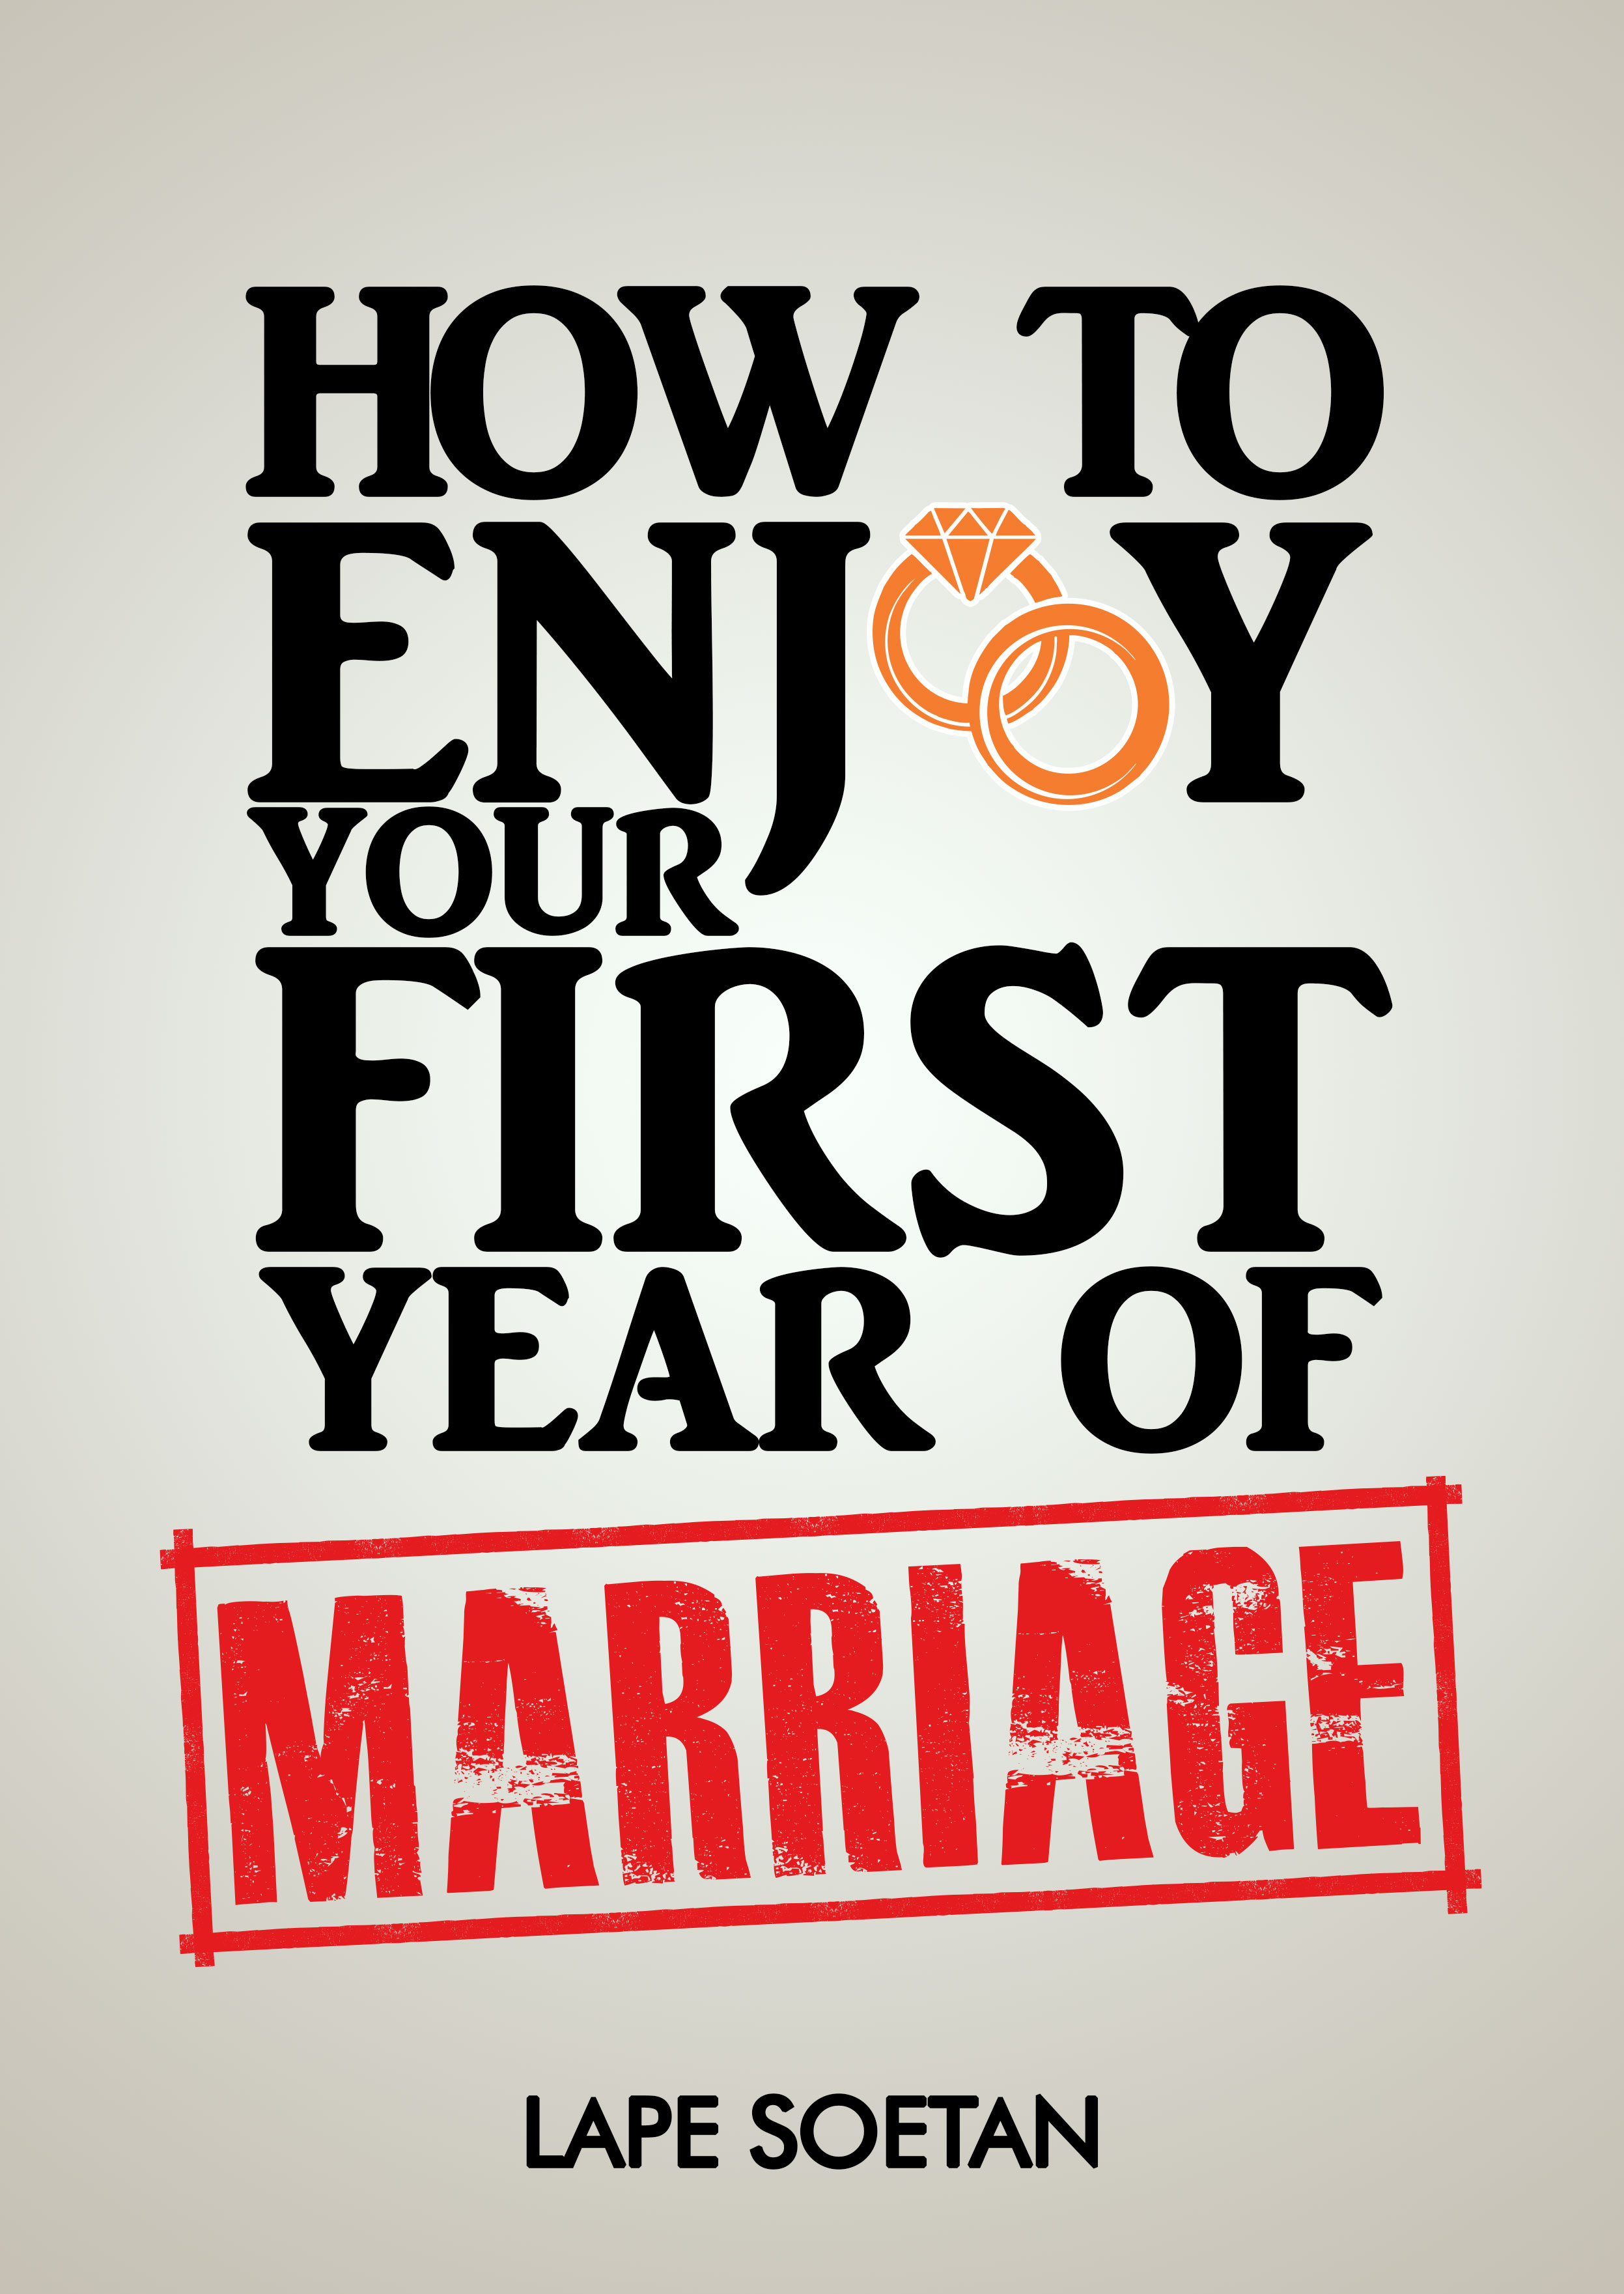 19 Truths About Your First Year Of Marriage